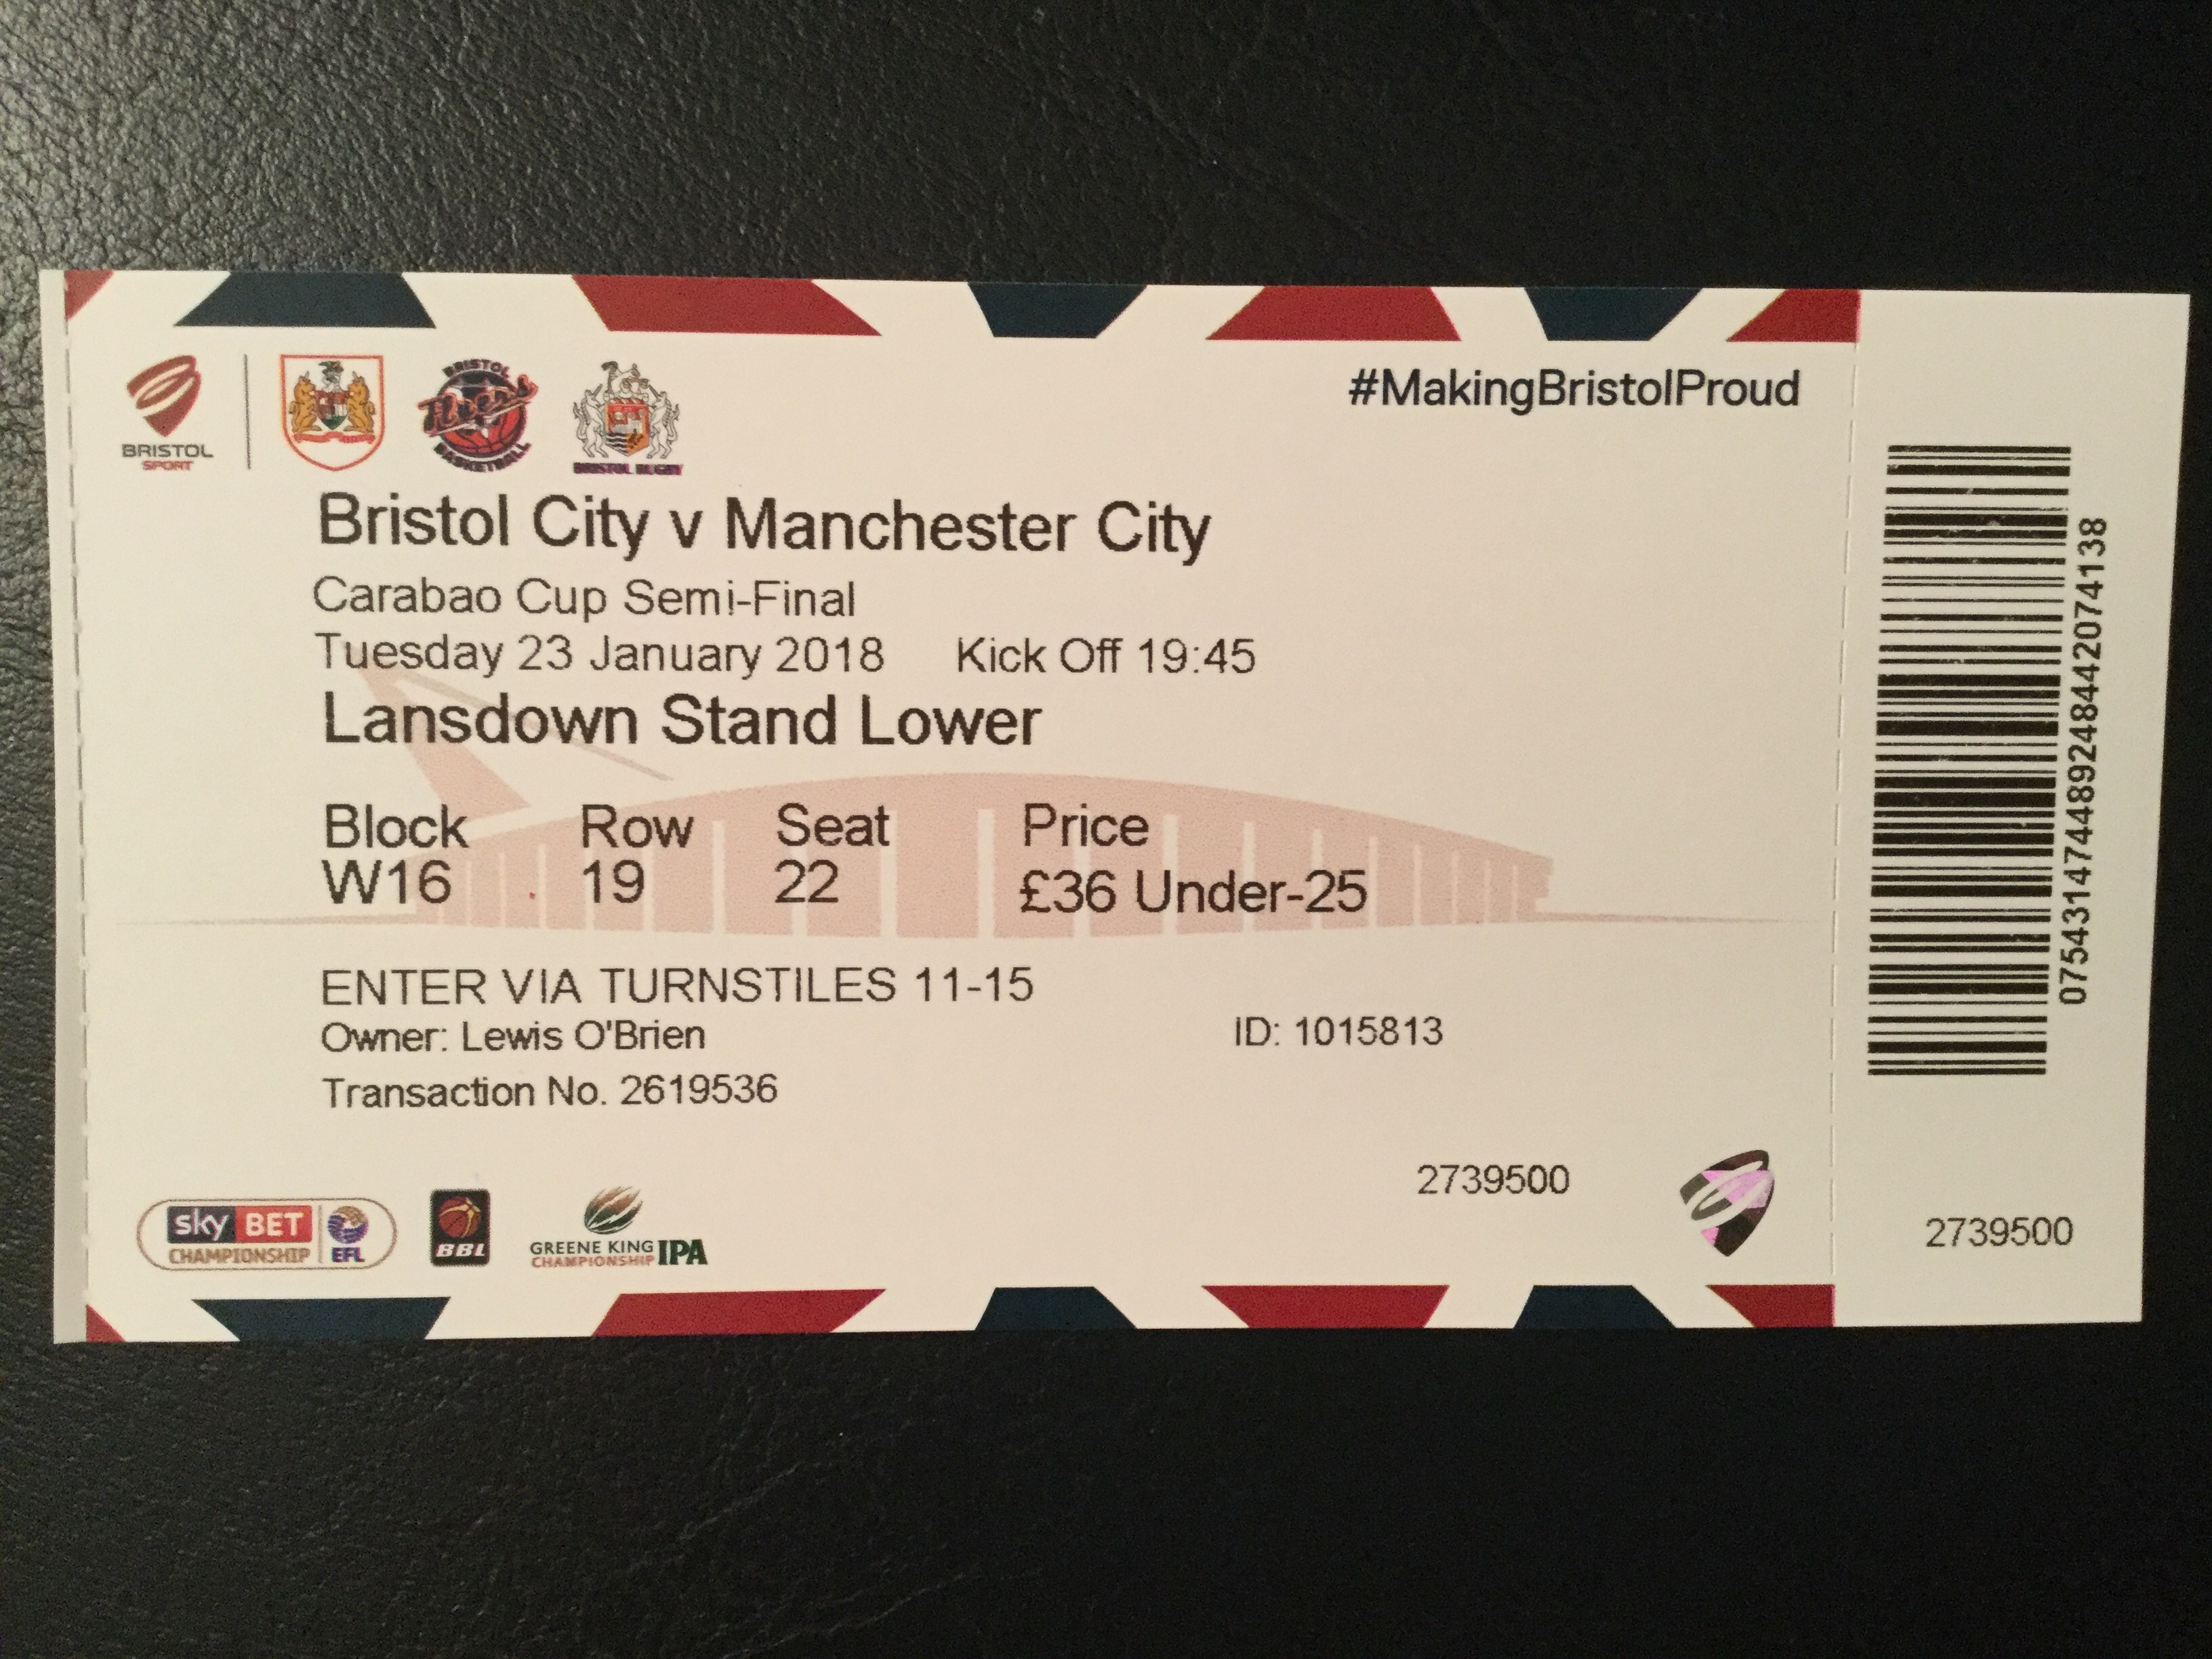 Bristol City v Manchester City 23-01-18 Ticket